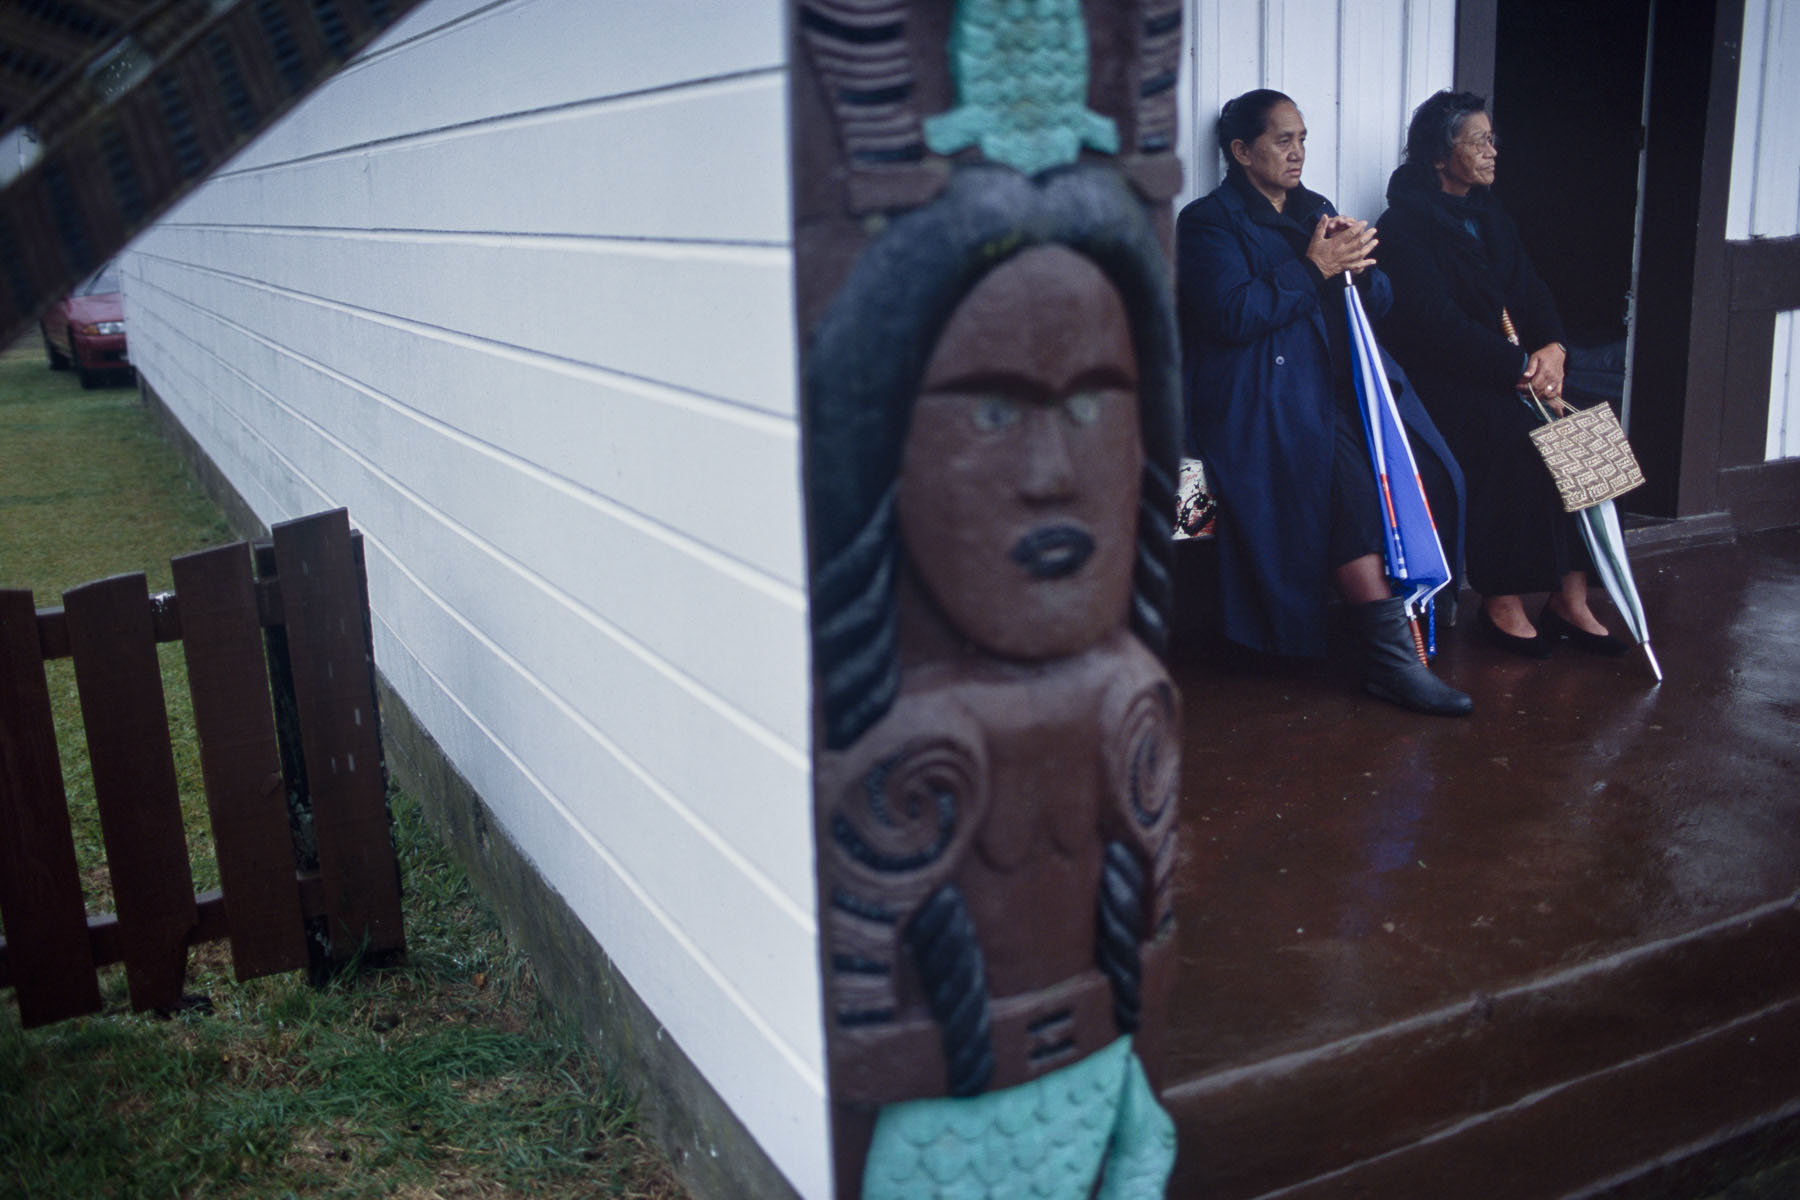 Maori women during a welcoming ceremony before a funeral at the marae, traditional meeting place in May 2000